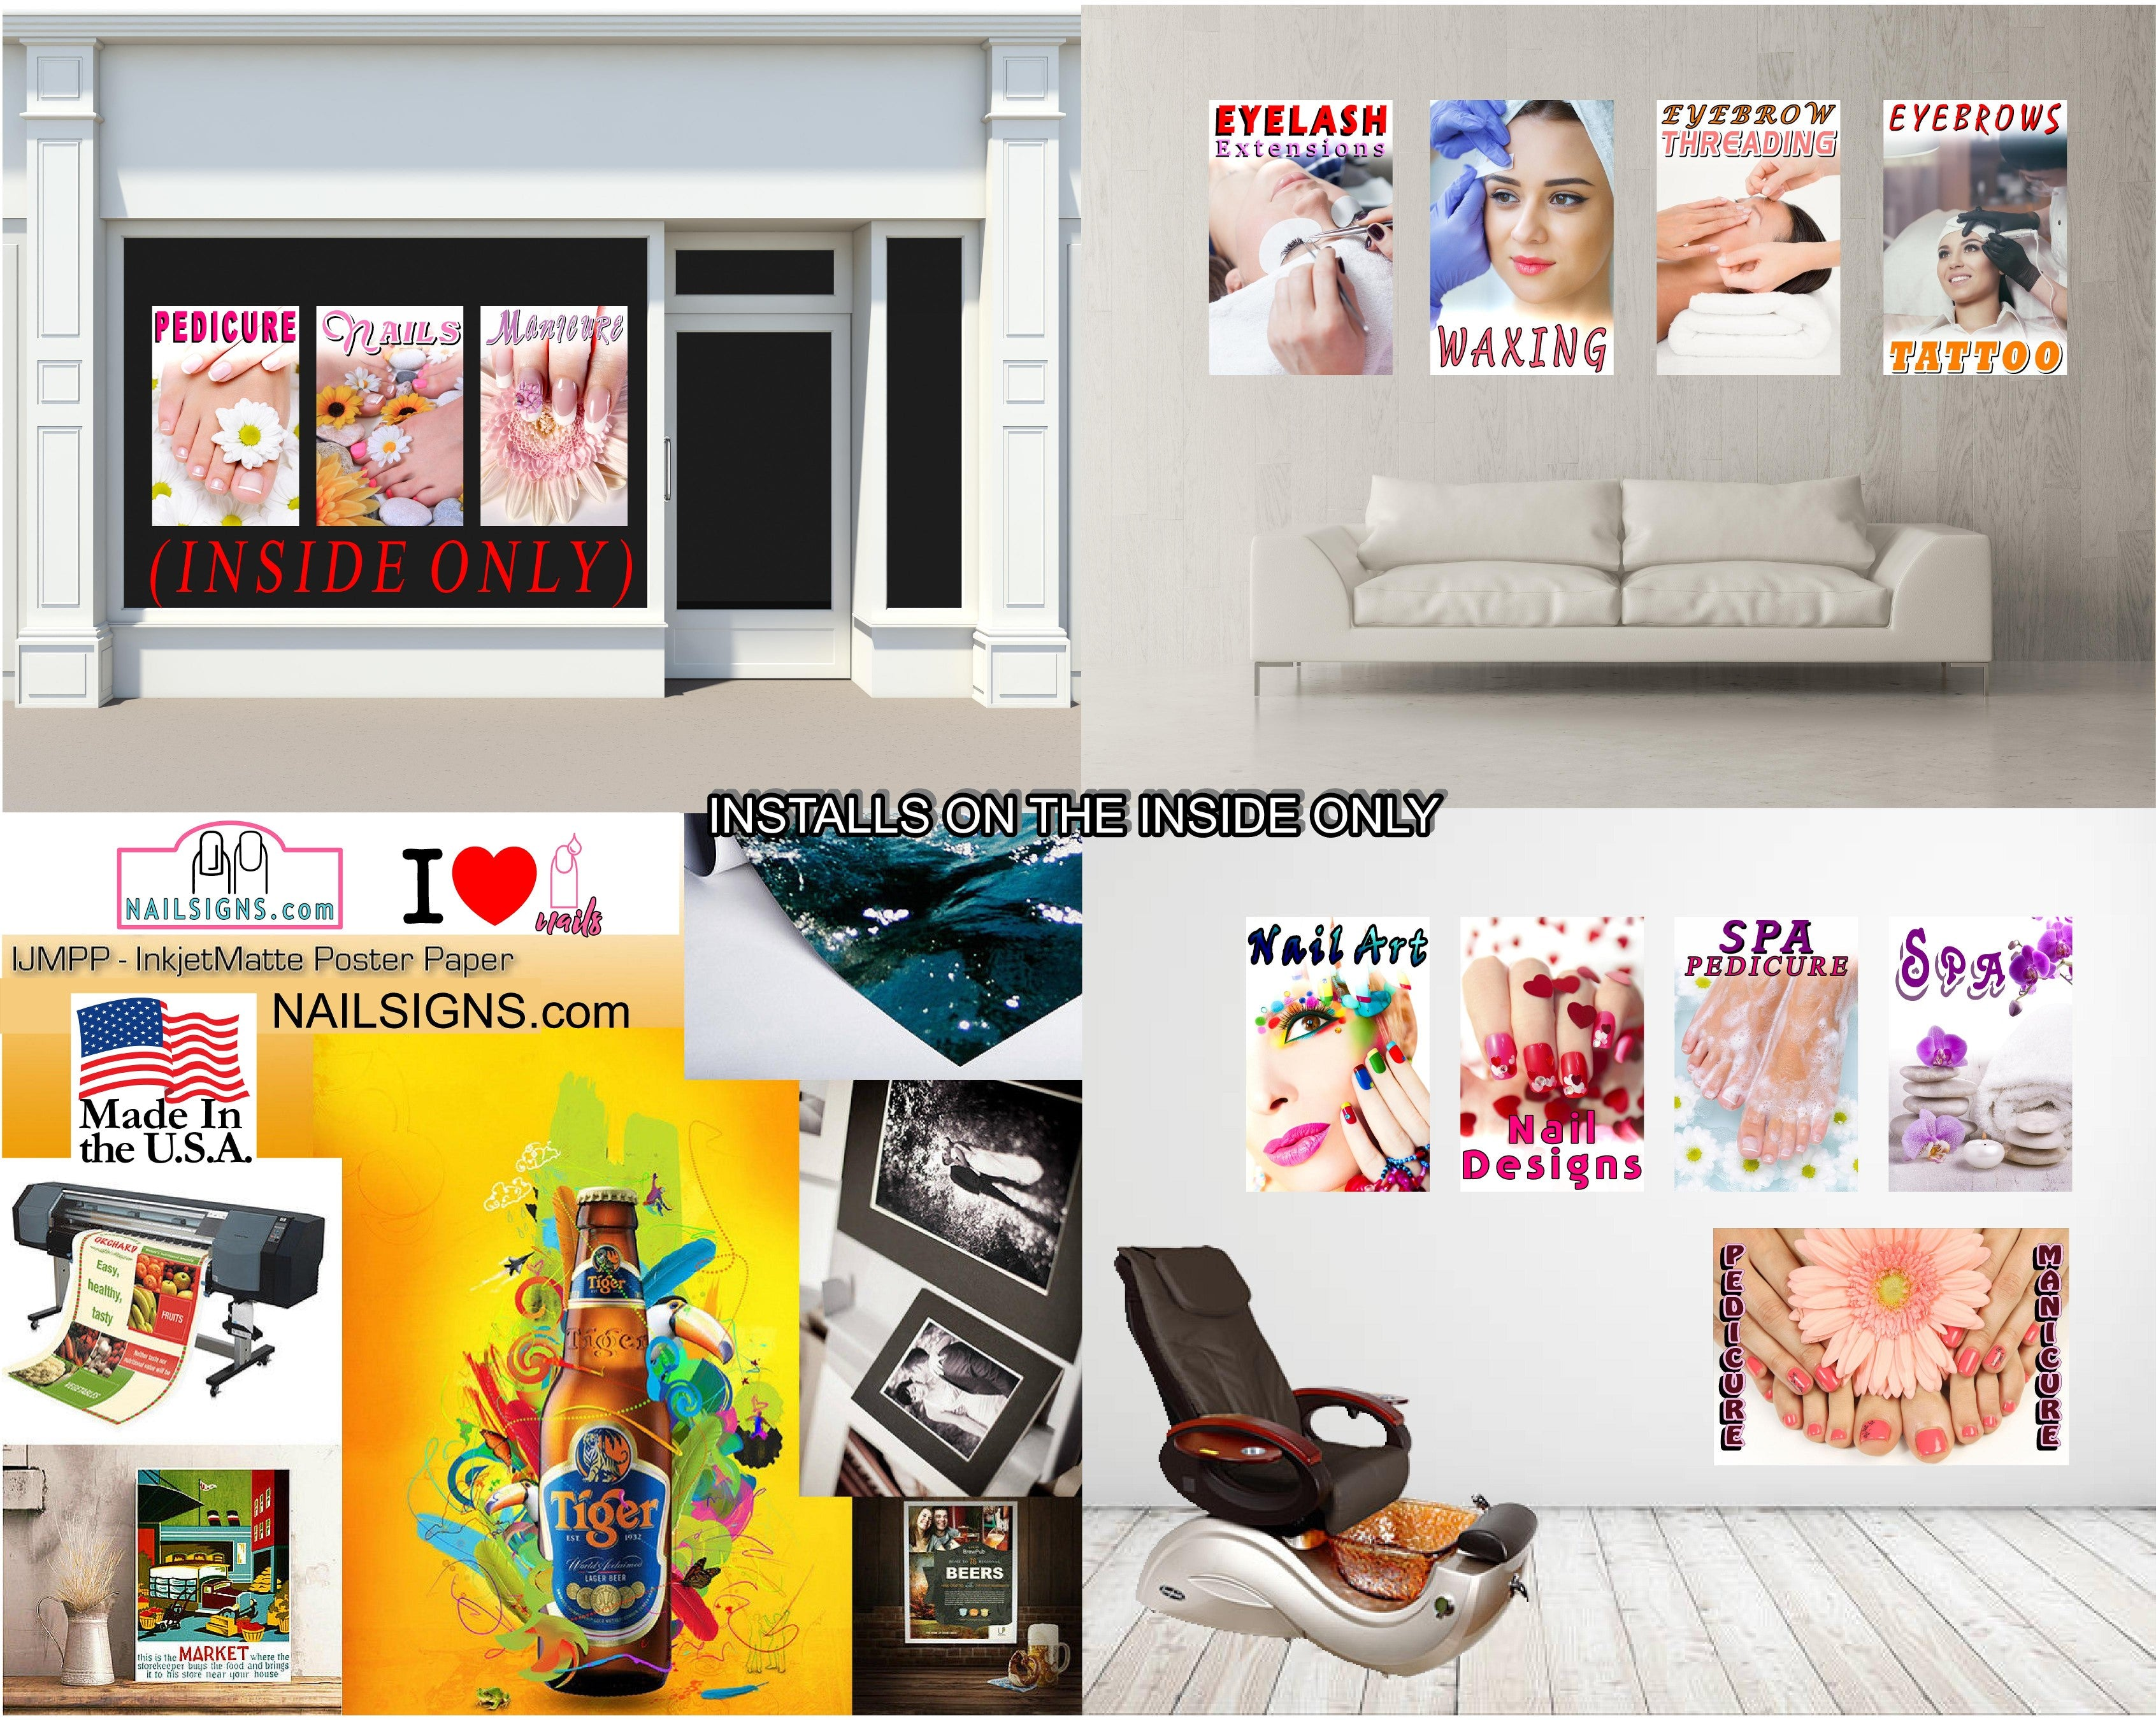 Hair Salon 12 Photo-Realistic Paper Poster Matte Interior Inside Sign Non-Laminated Vertical